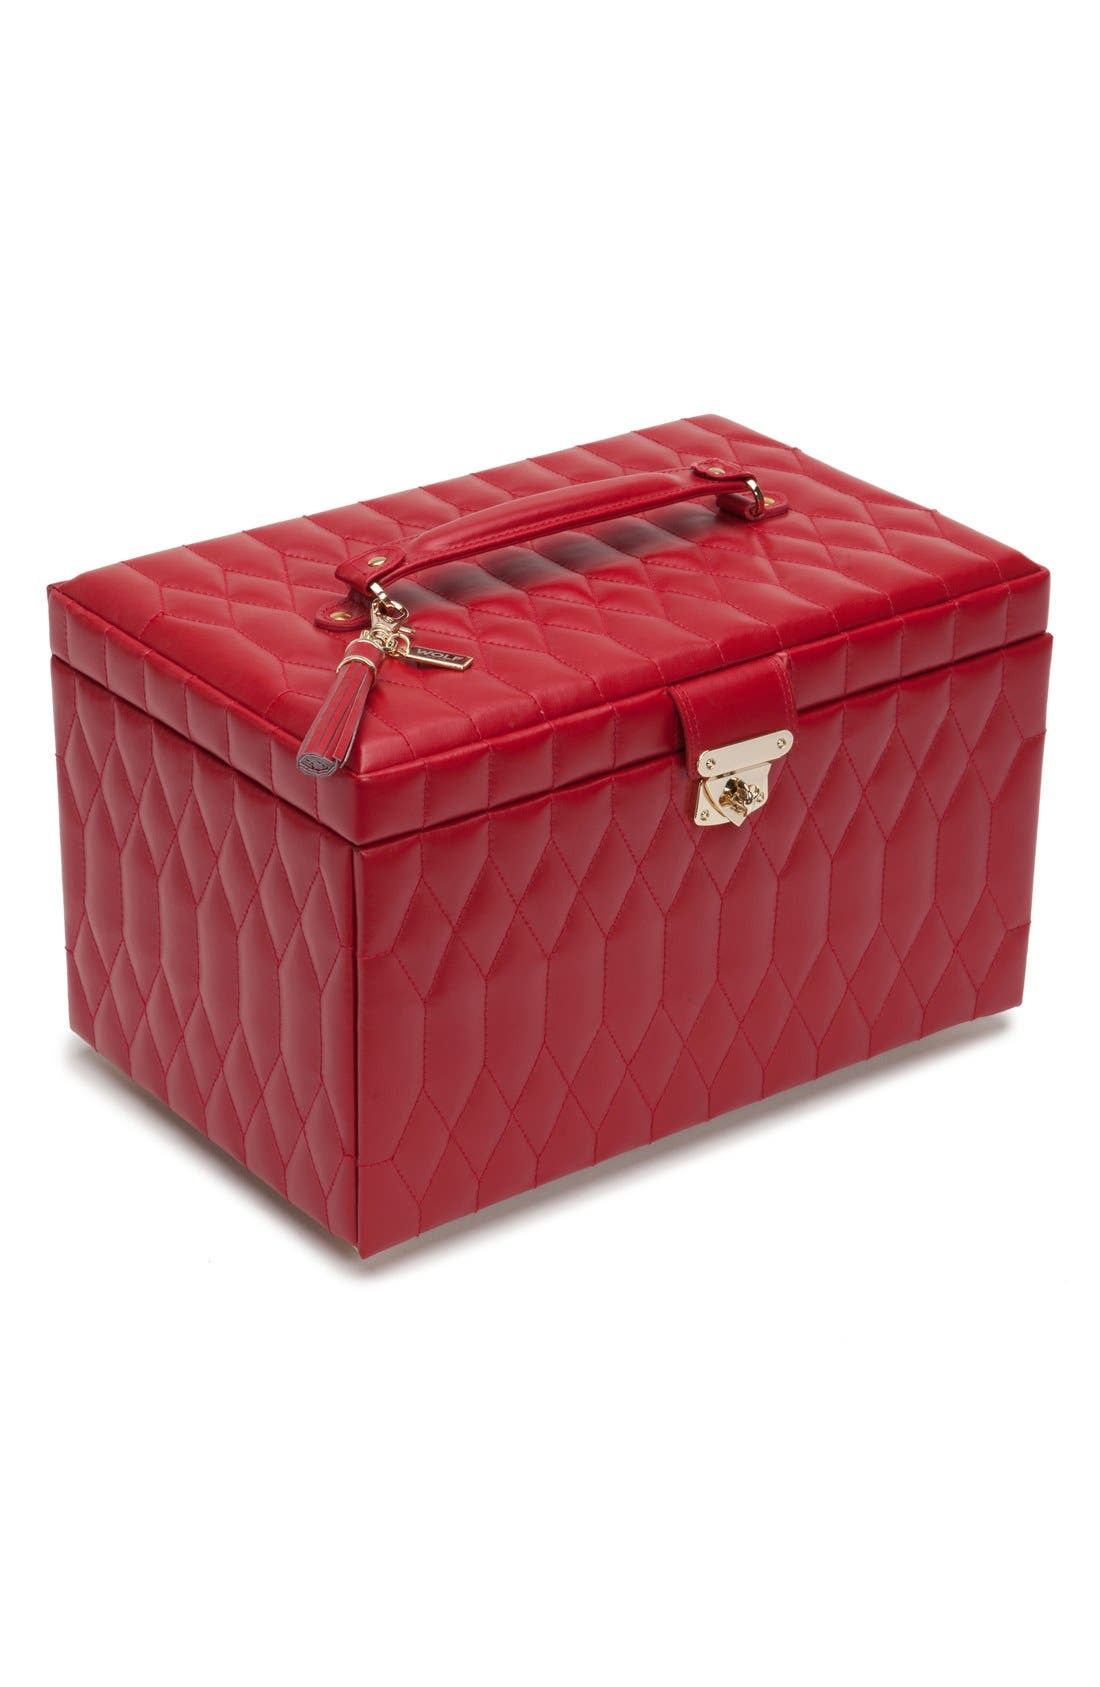 'Caroline' Jewelry Case,                             Main thumbnail 1, color,                             Red